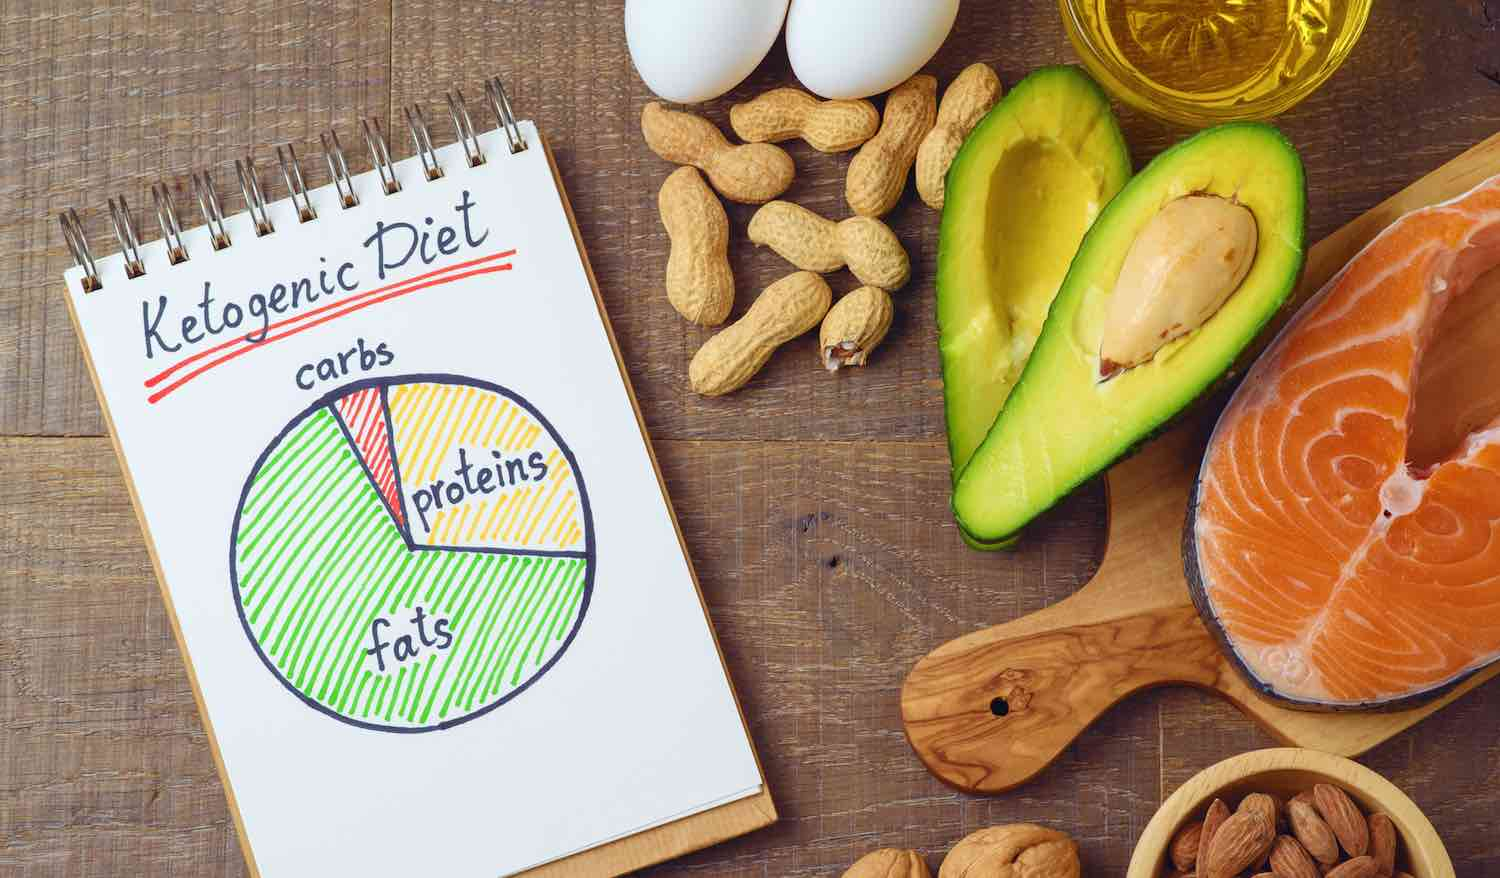 Does the ketogenic diet have a role in treating cancer?